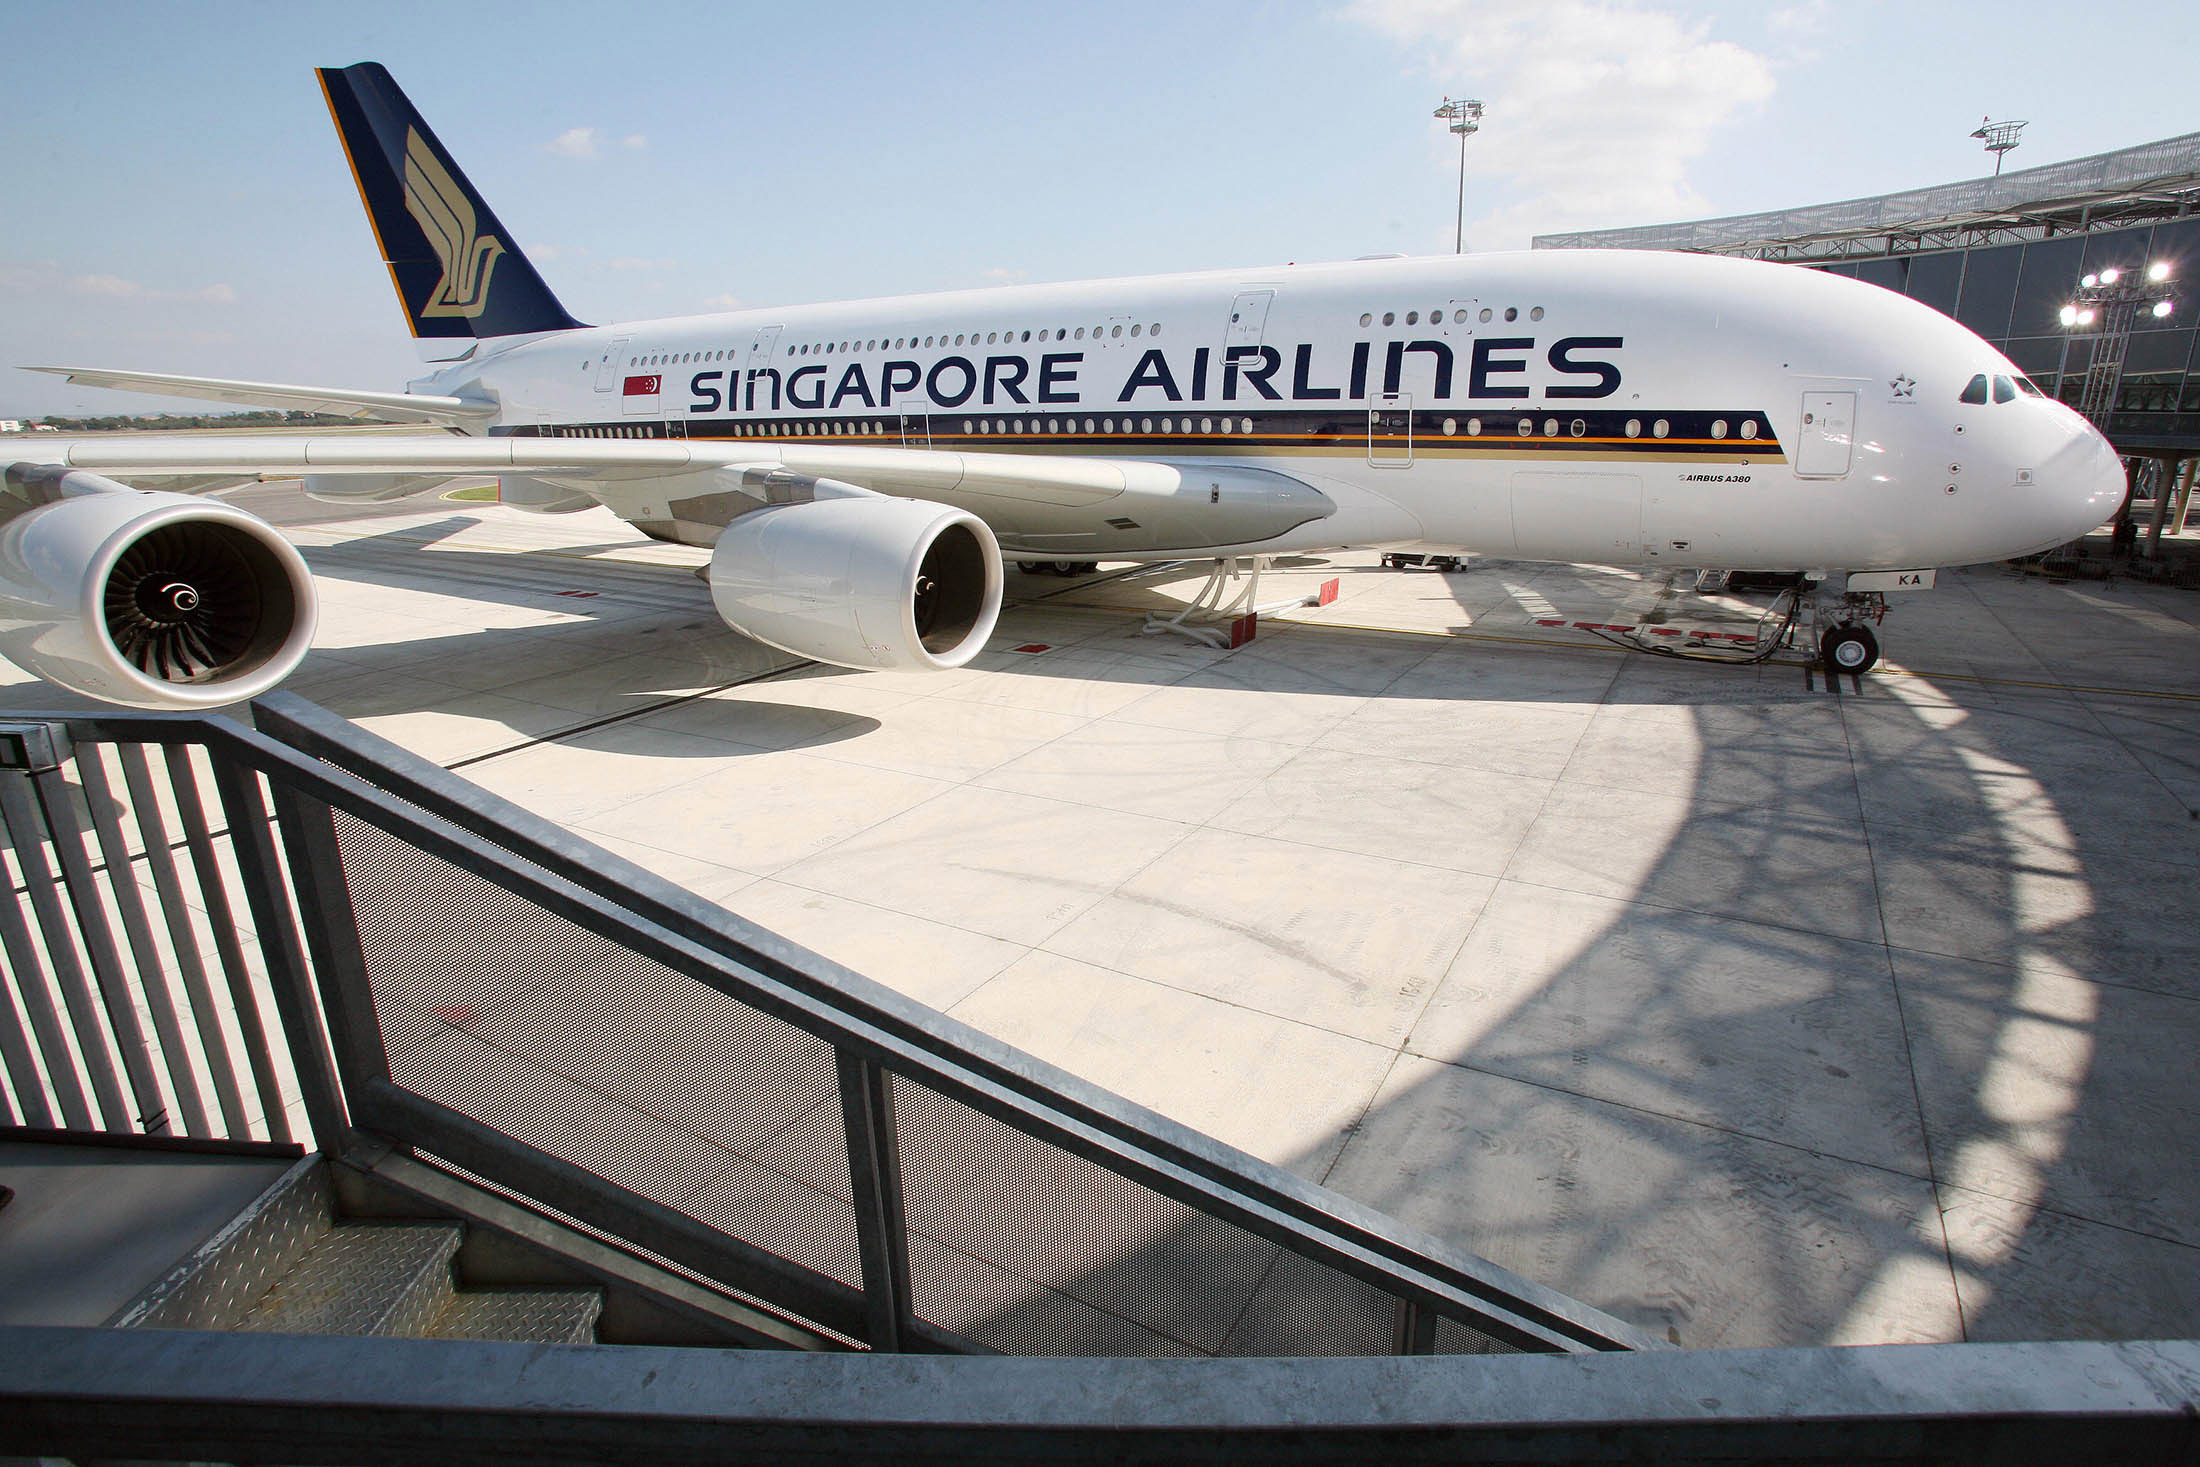 singapore airlines financial intermediaries Ratios valuation of singapore airlines ltd ( c6l | sgp) the ev/ebitda ntm ratio (also called ebitda multiple or enterprise multiple) is a well-known company.